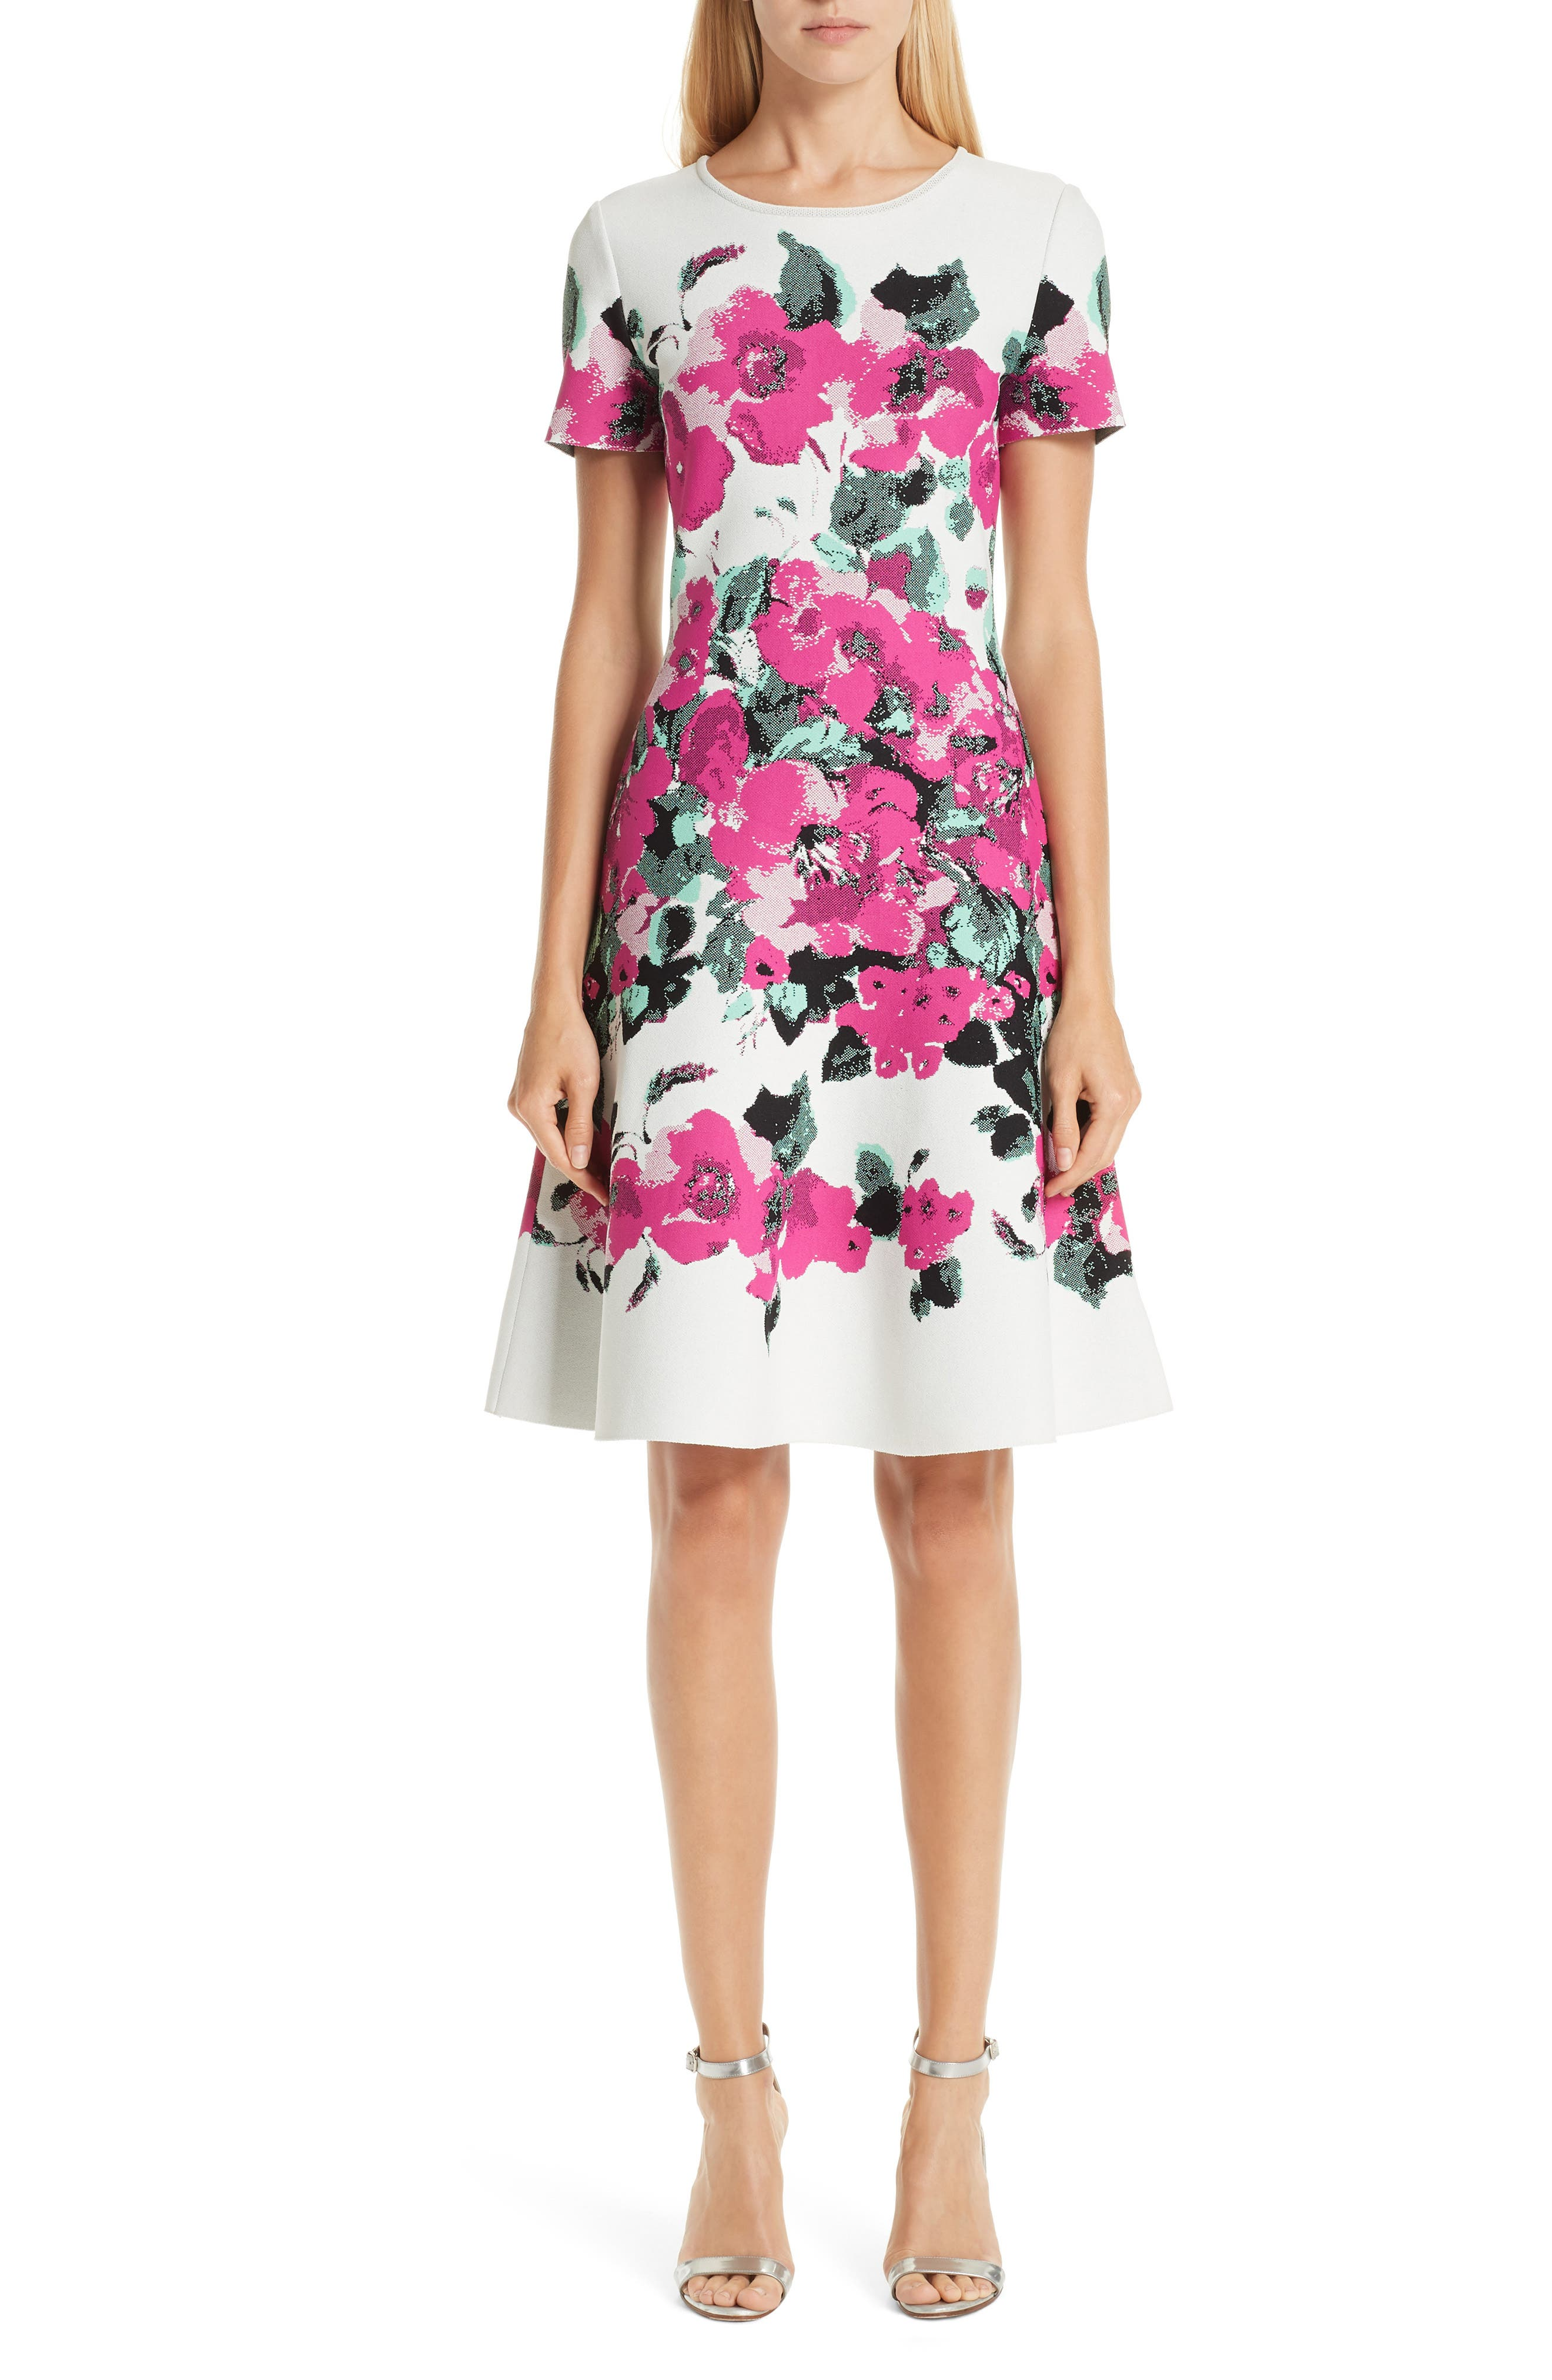 St. John Collection Vibrant Blooming Jacquard Fit & Flare Dress, Beige